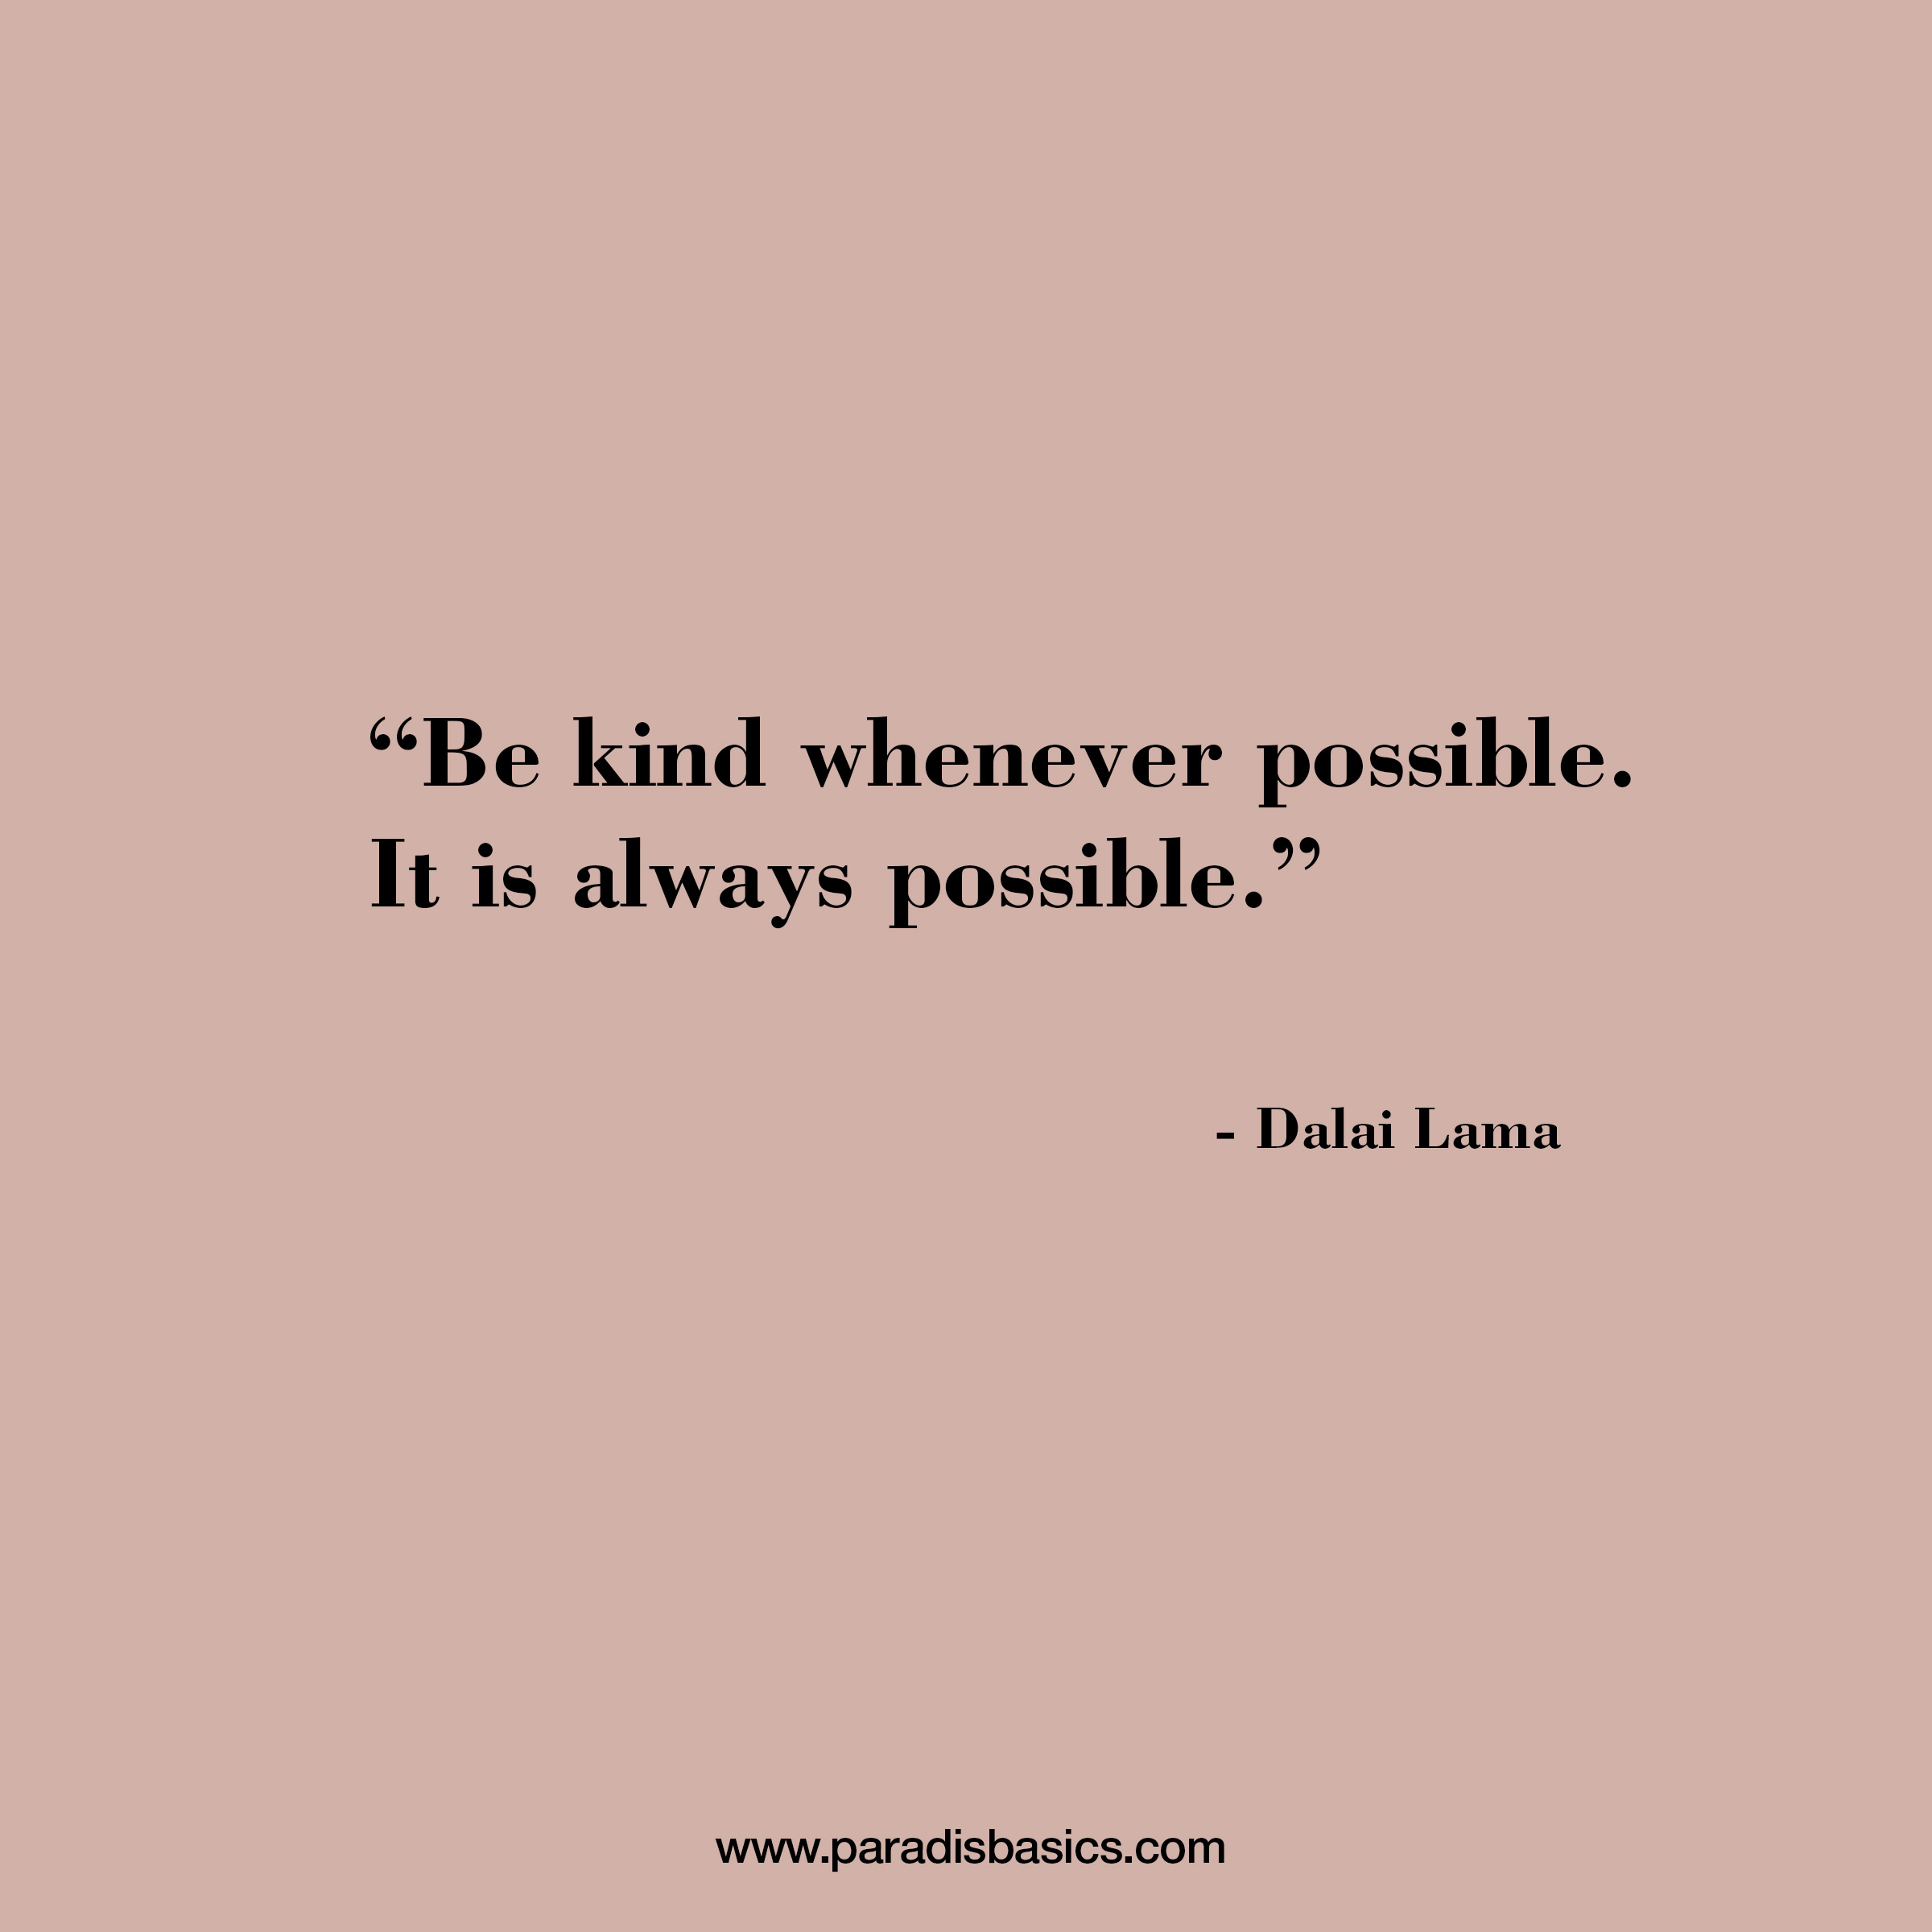 Be kind whenever possible. It is always possible - Dalai Lama